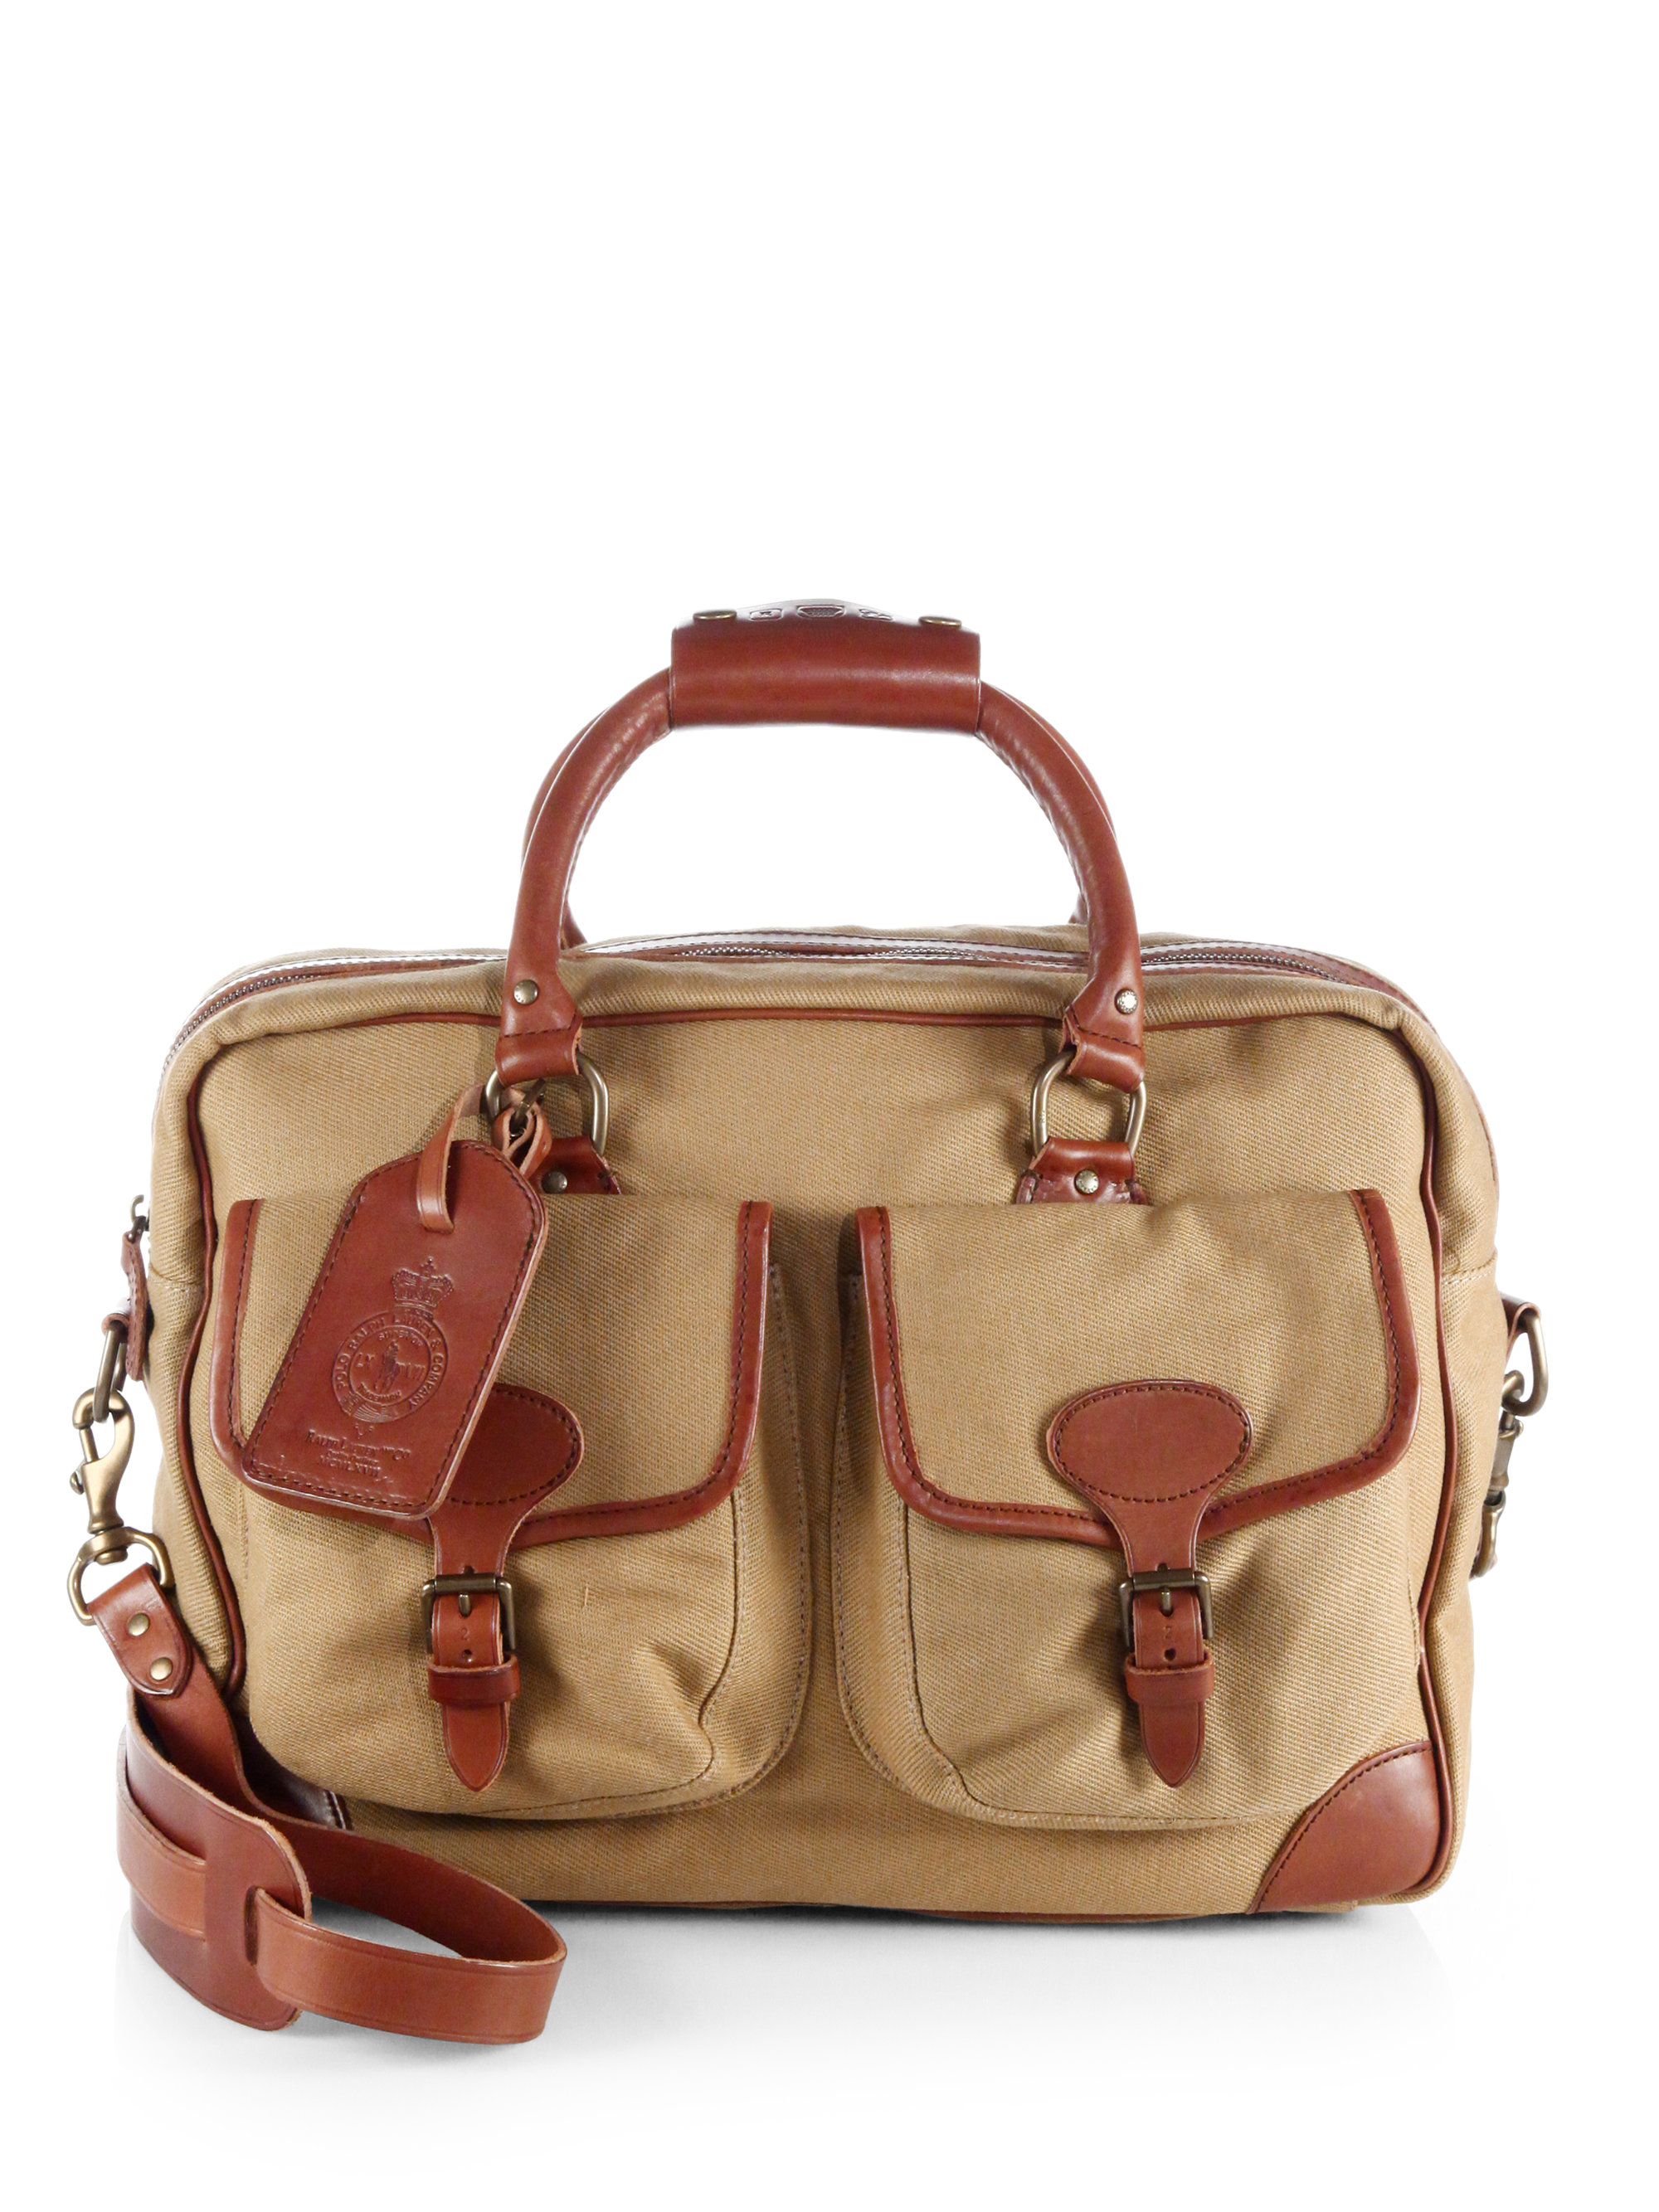 Lyst - Polo Ralph Lauren Twill Commuter Messenger Bag in Brown for Men 0e2a5cee9f